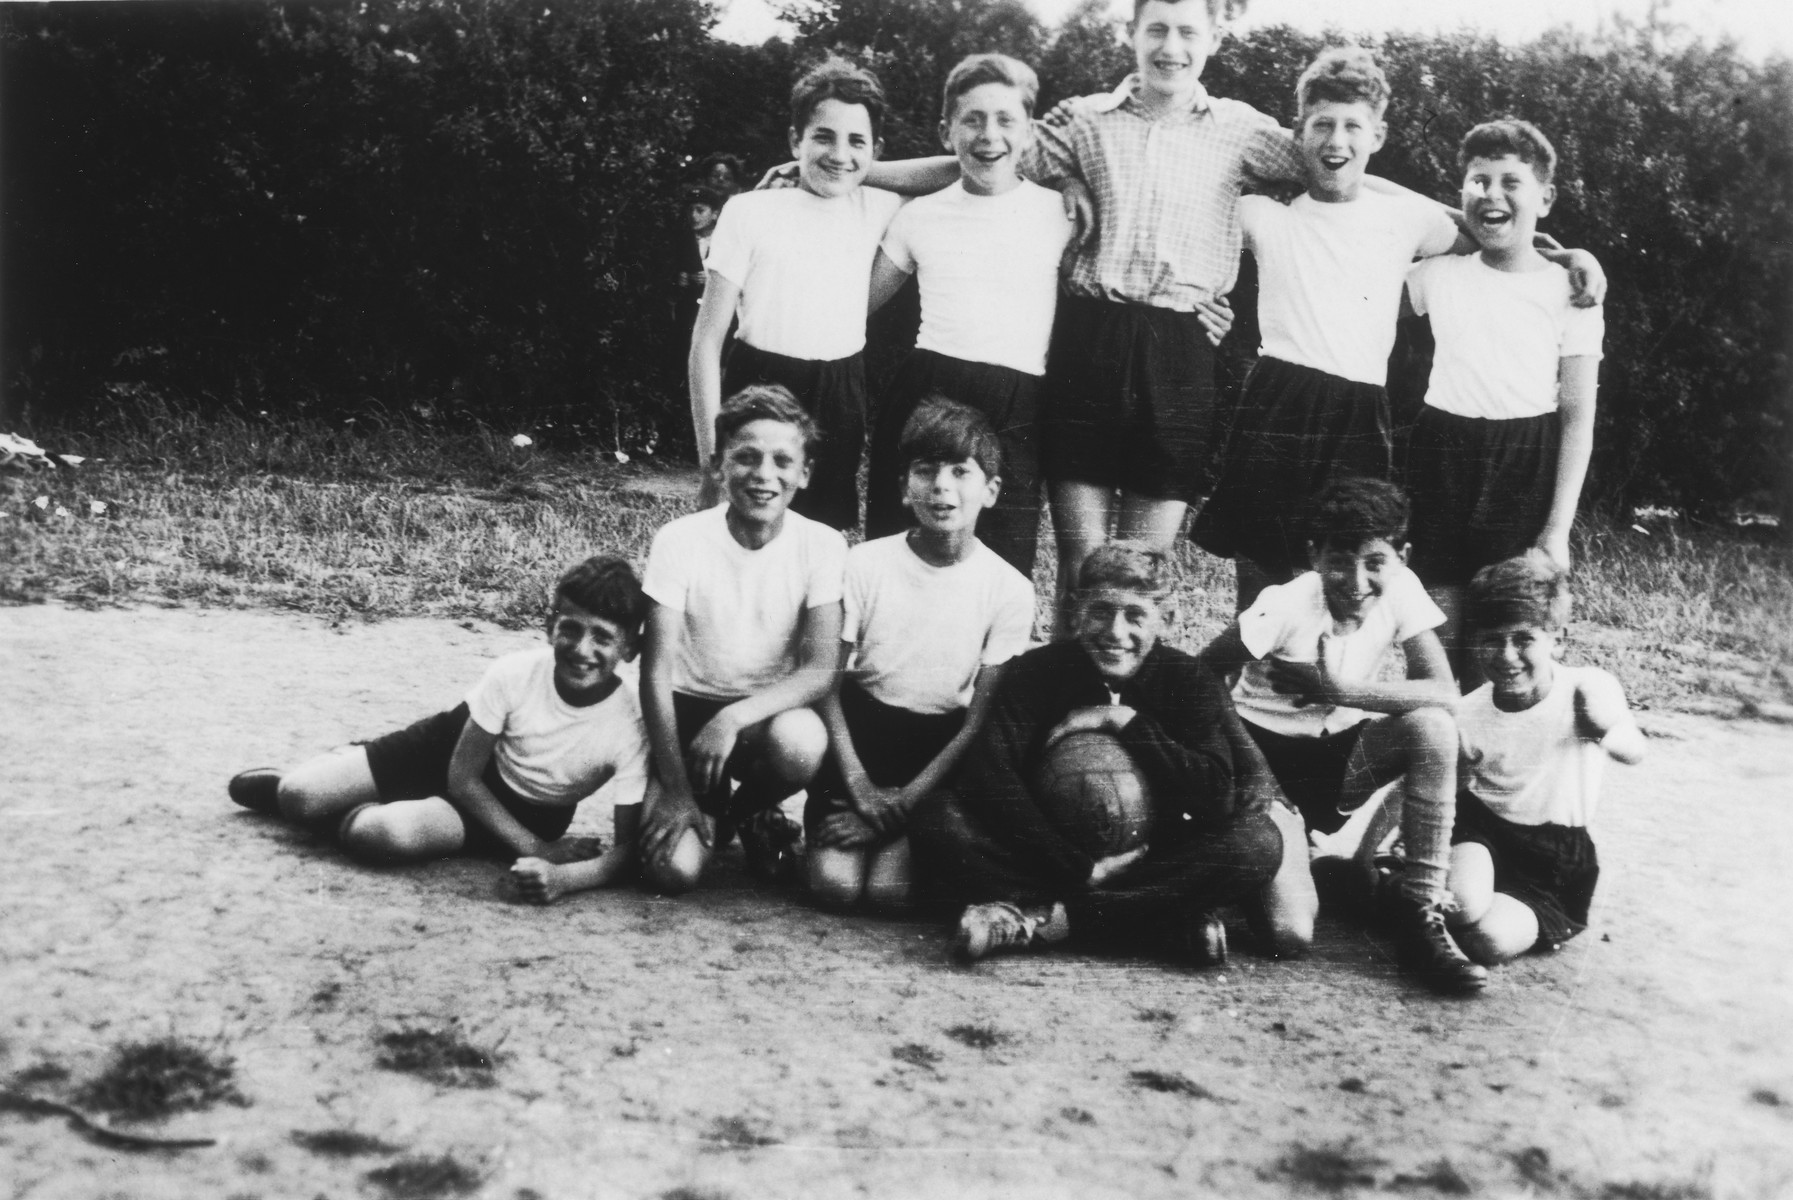 Group portrait of the members of the soccer team of the Rowden Hall School in Margate.    After the Dunkirk evaucation the children were evacuated to the Midlands, Staffordshire, Litchfield or Cannock Chase.   Among those pictured are Guenther Cahn (standing, far left) and Alfred Schwarzkopf (seated middle with the ball).  Fritz Weiss is seated third from the left.  Werner M. Rothschild is standing in the back row, far right.  [Seated on the left are possibly the brothers Cohen.]